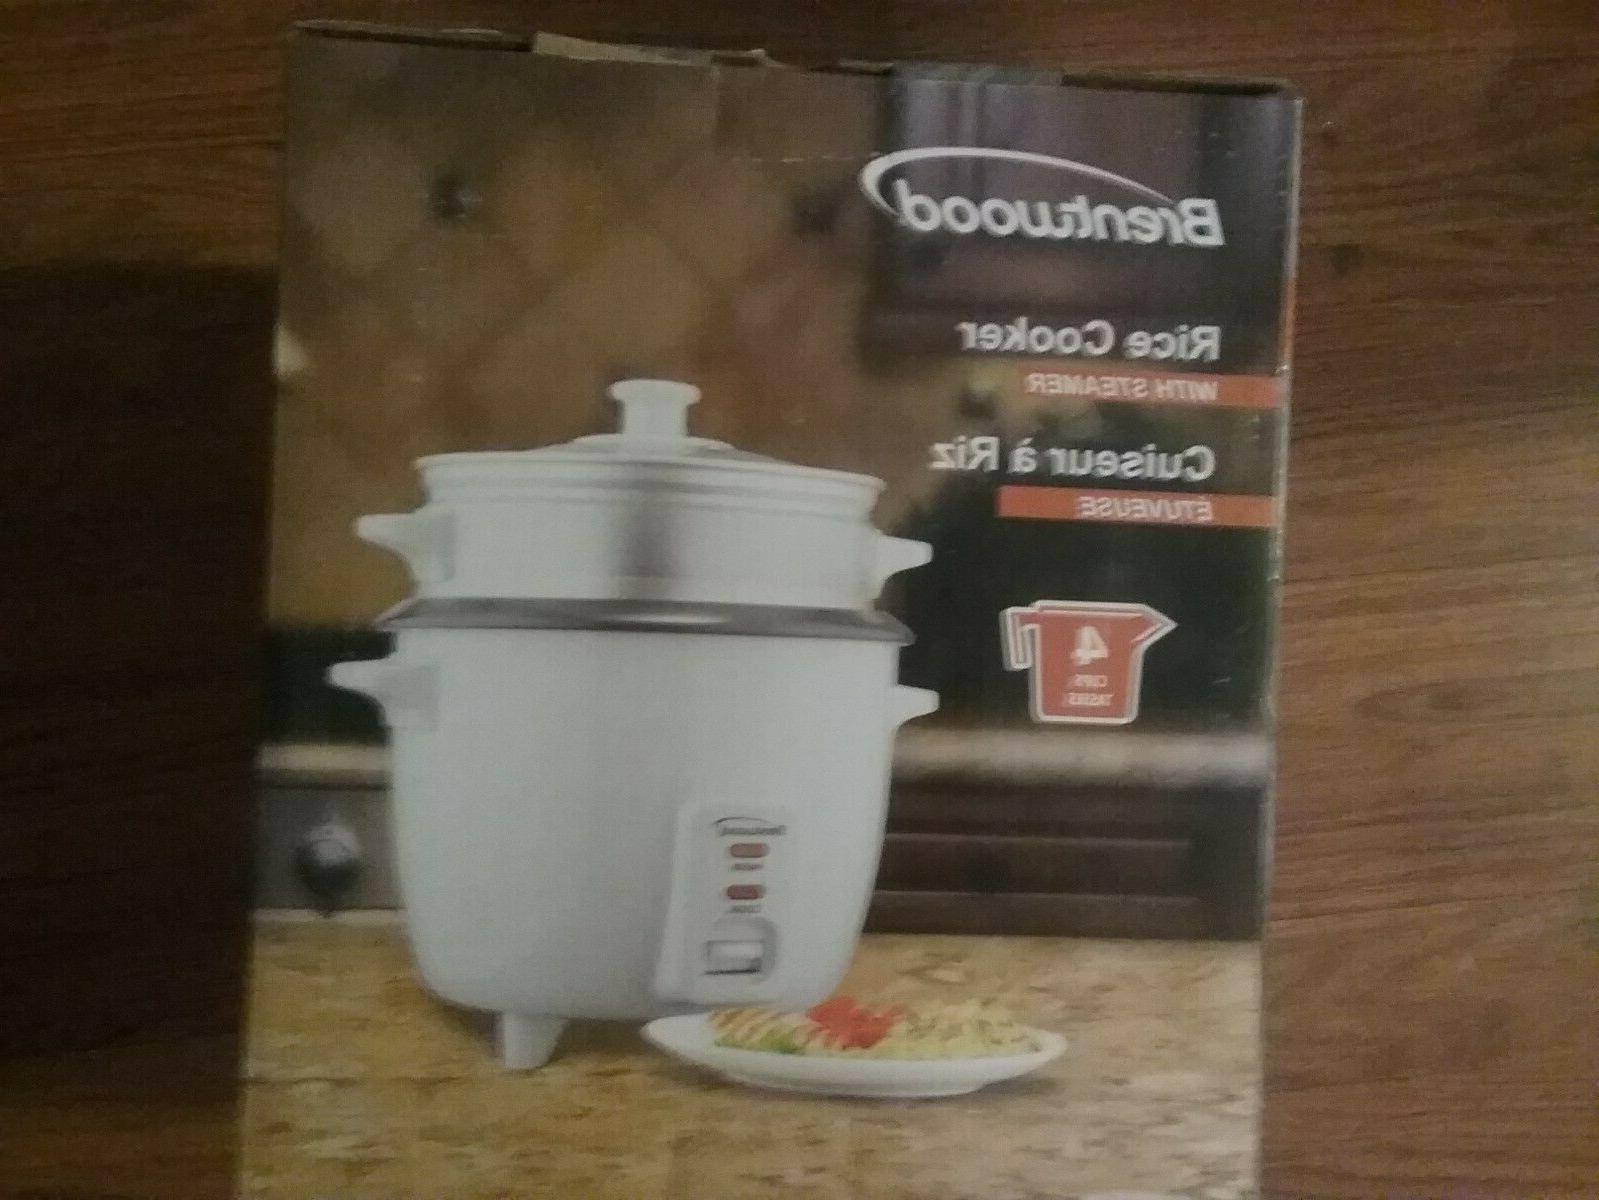 brand new in box rice cooker by